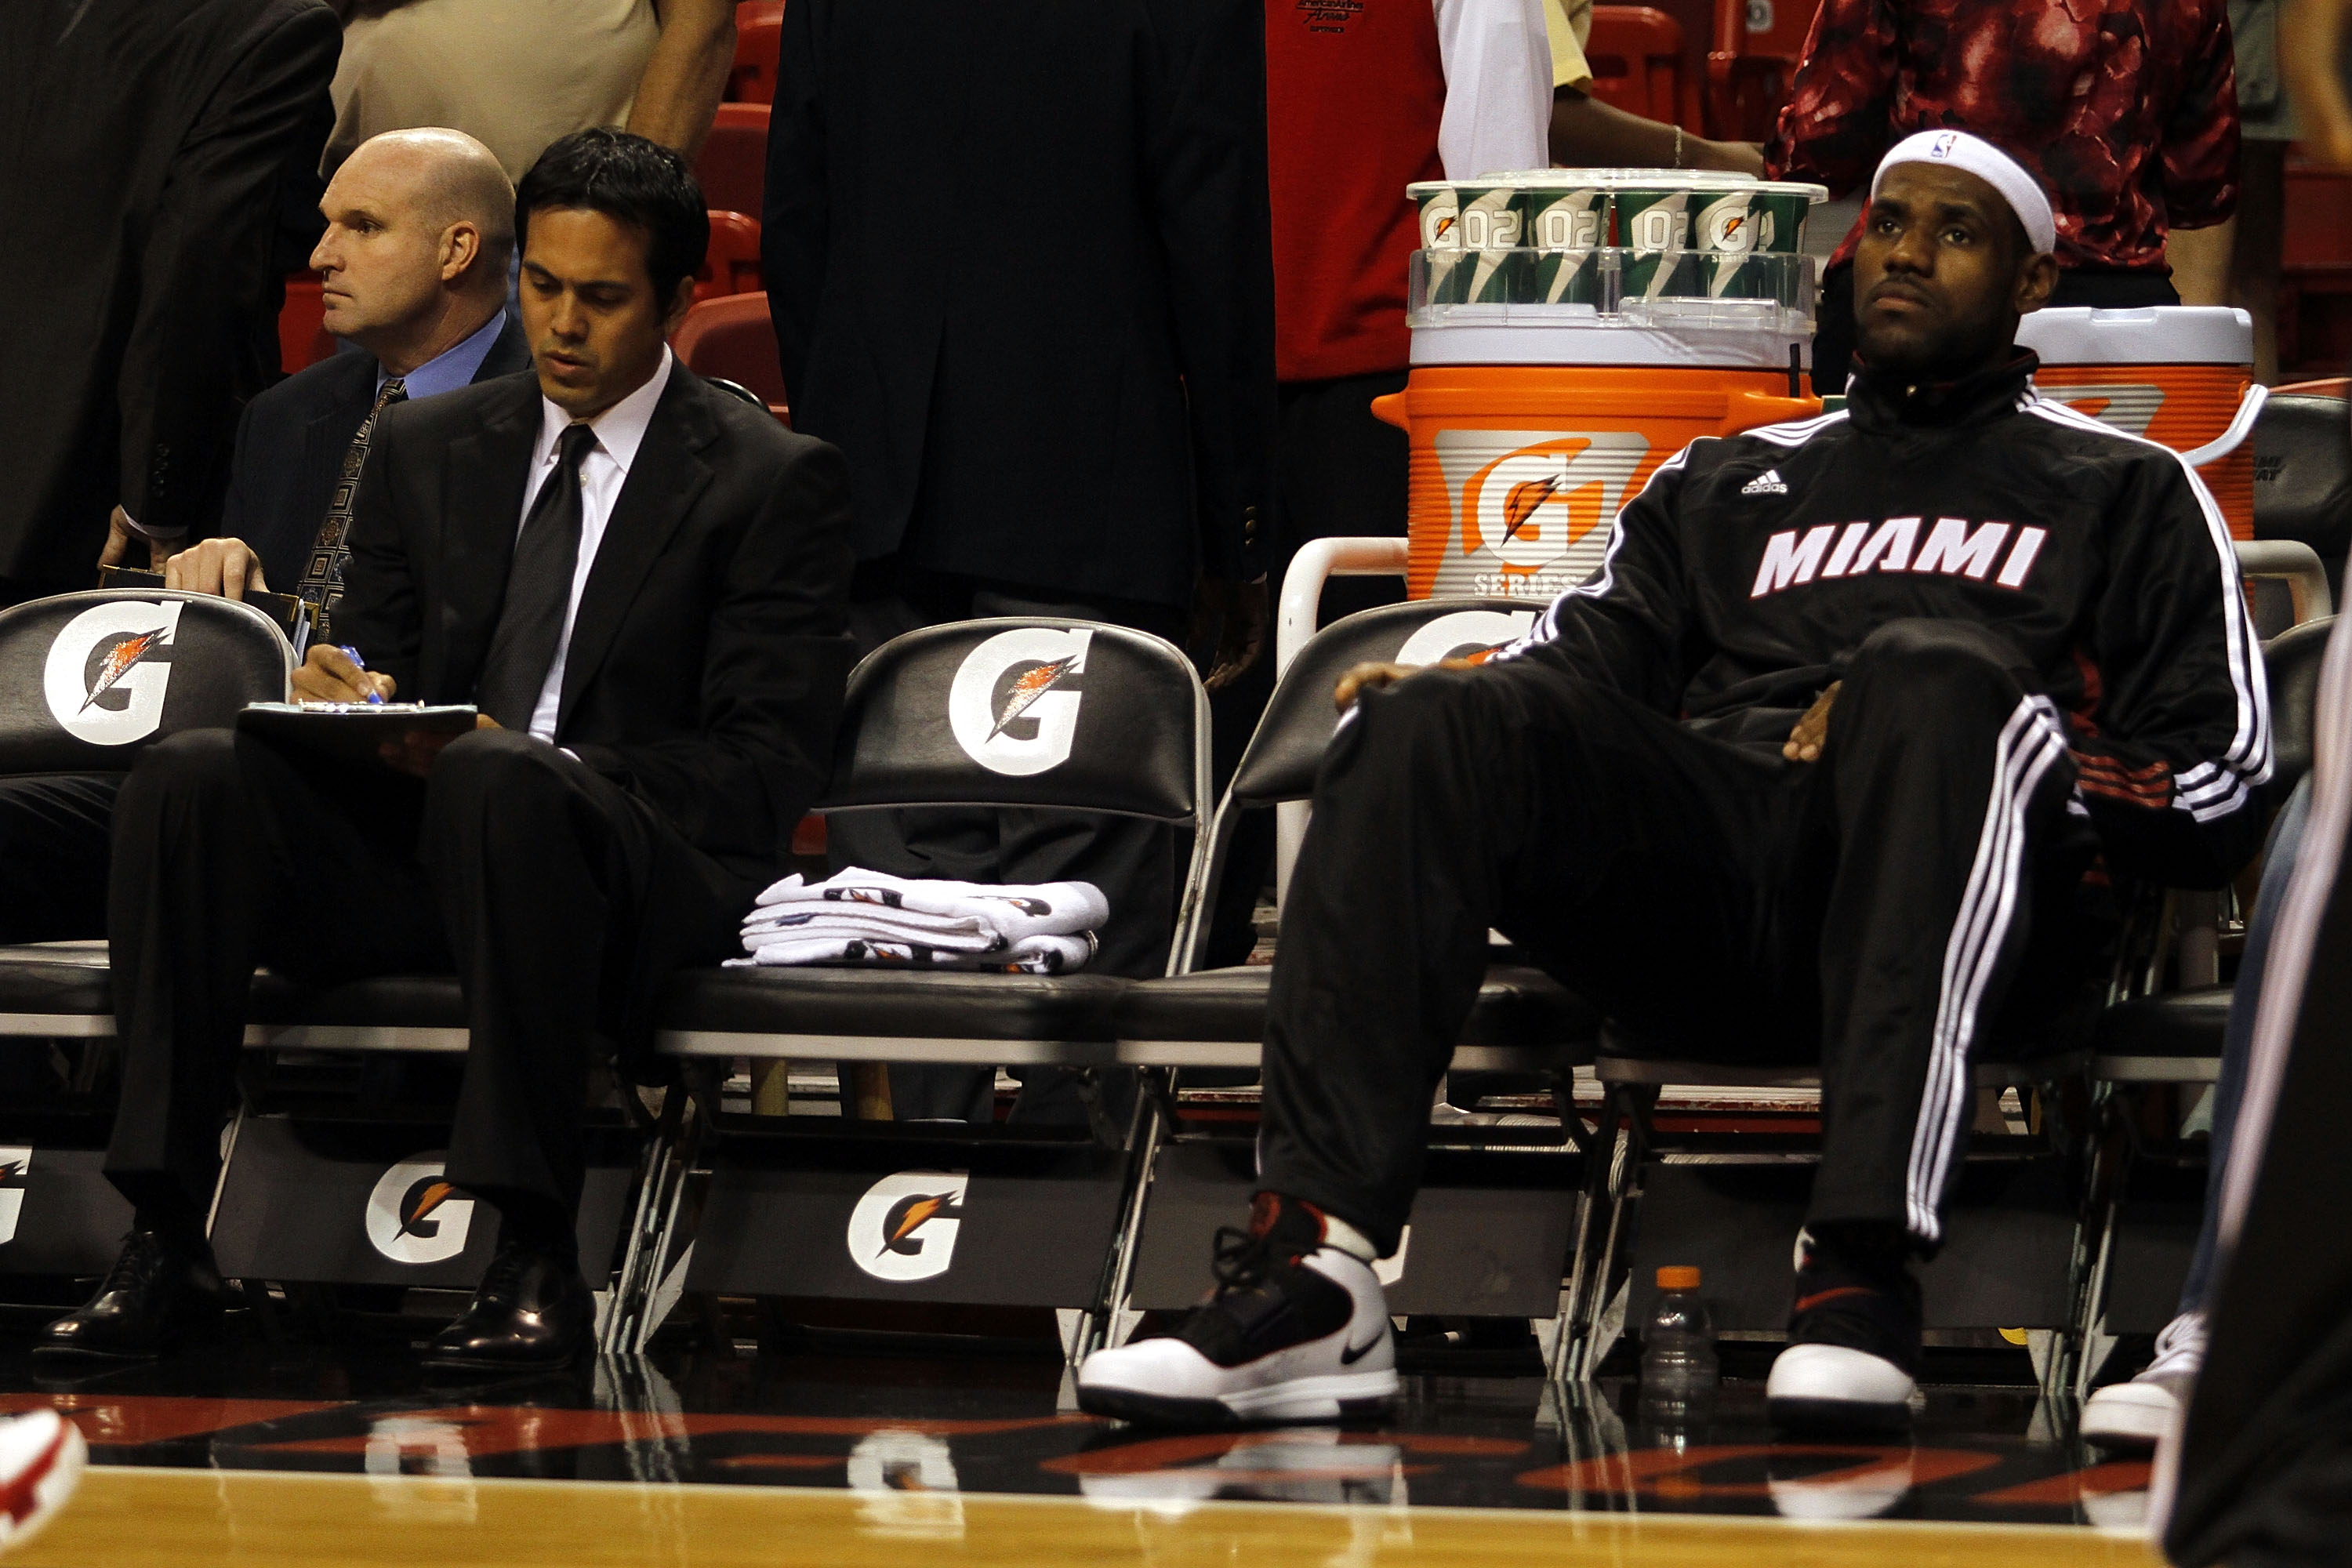 the miami s plenty card herald nba watches bad report of heat starters has midseason hassan grades sports